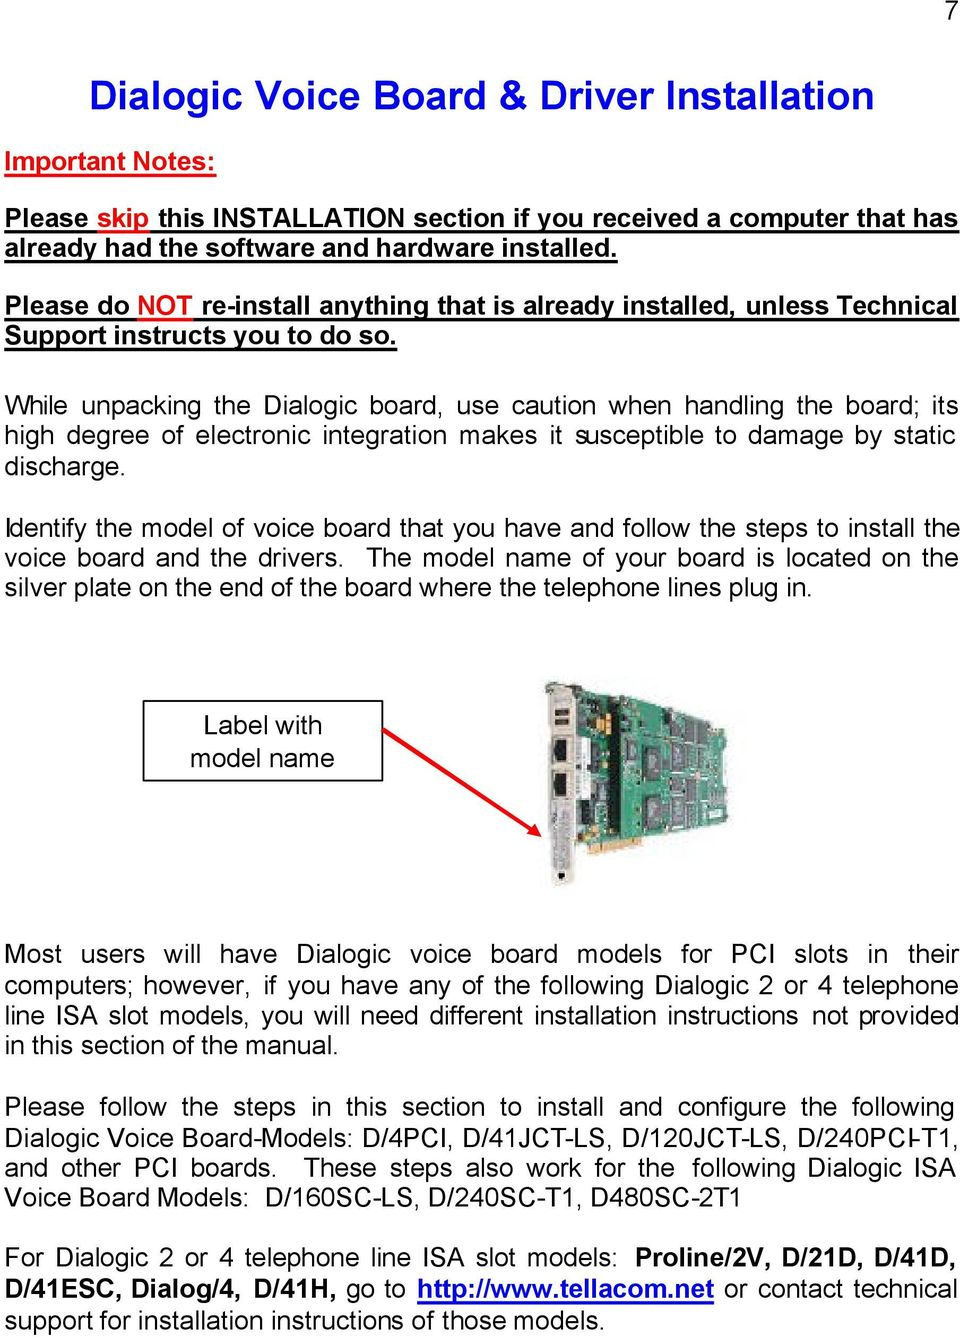 While unpacking the Dialogic board, use caution when handling the board; its high degree of electronic integration makes it susceptible to damage by static discharge.